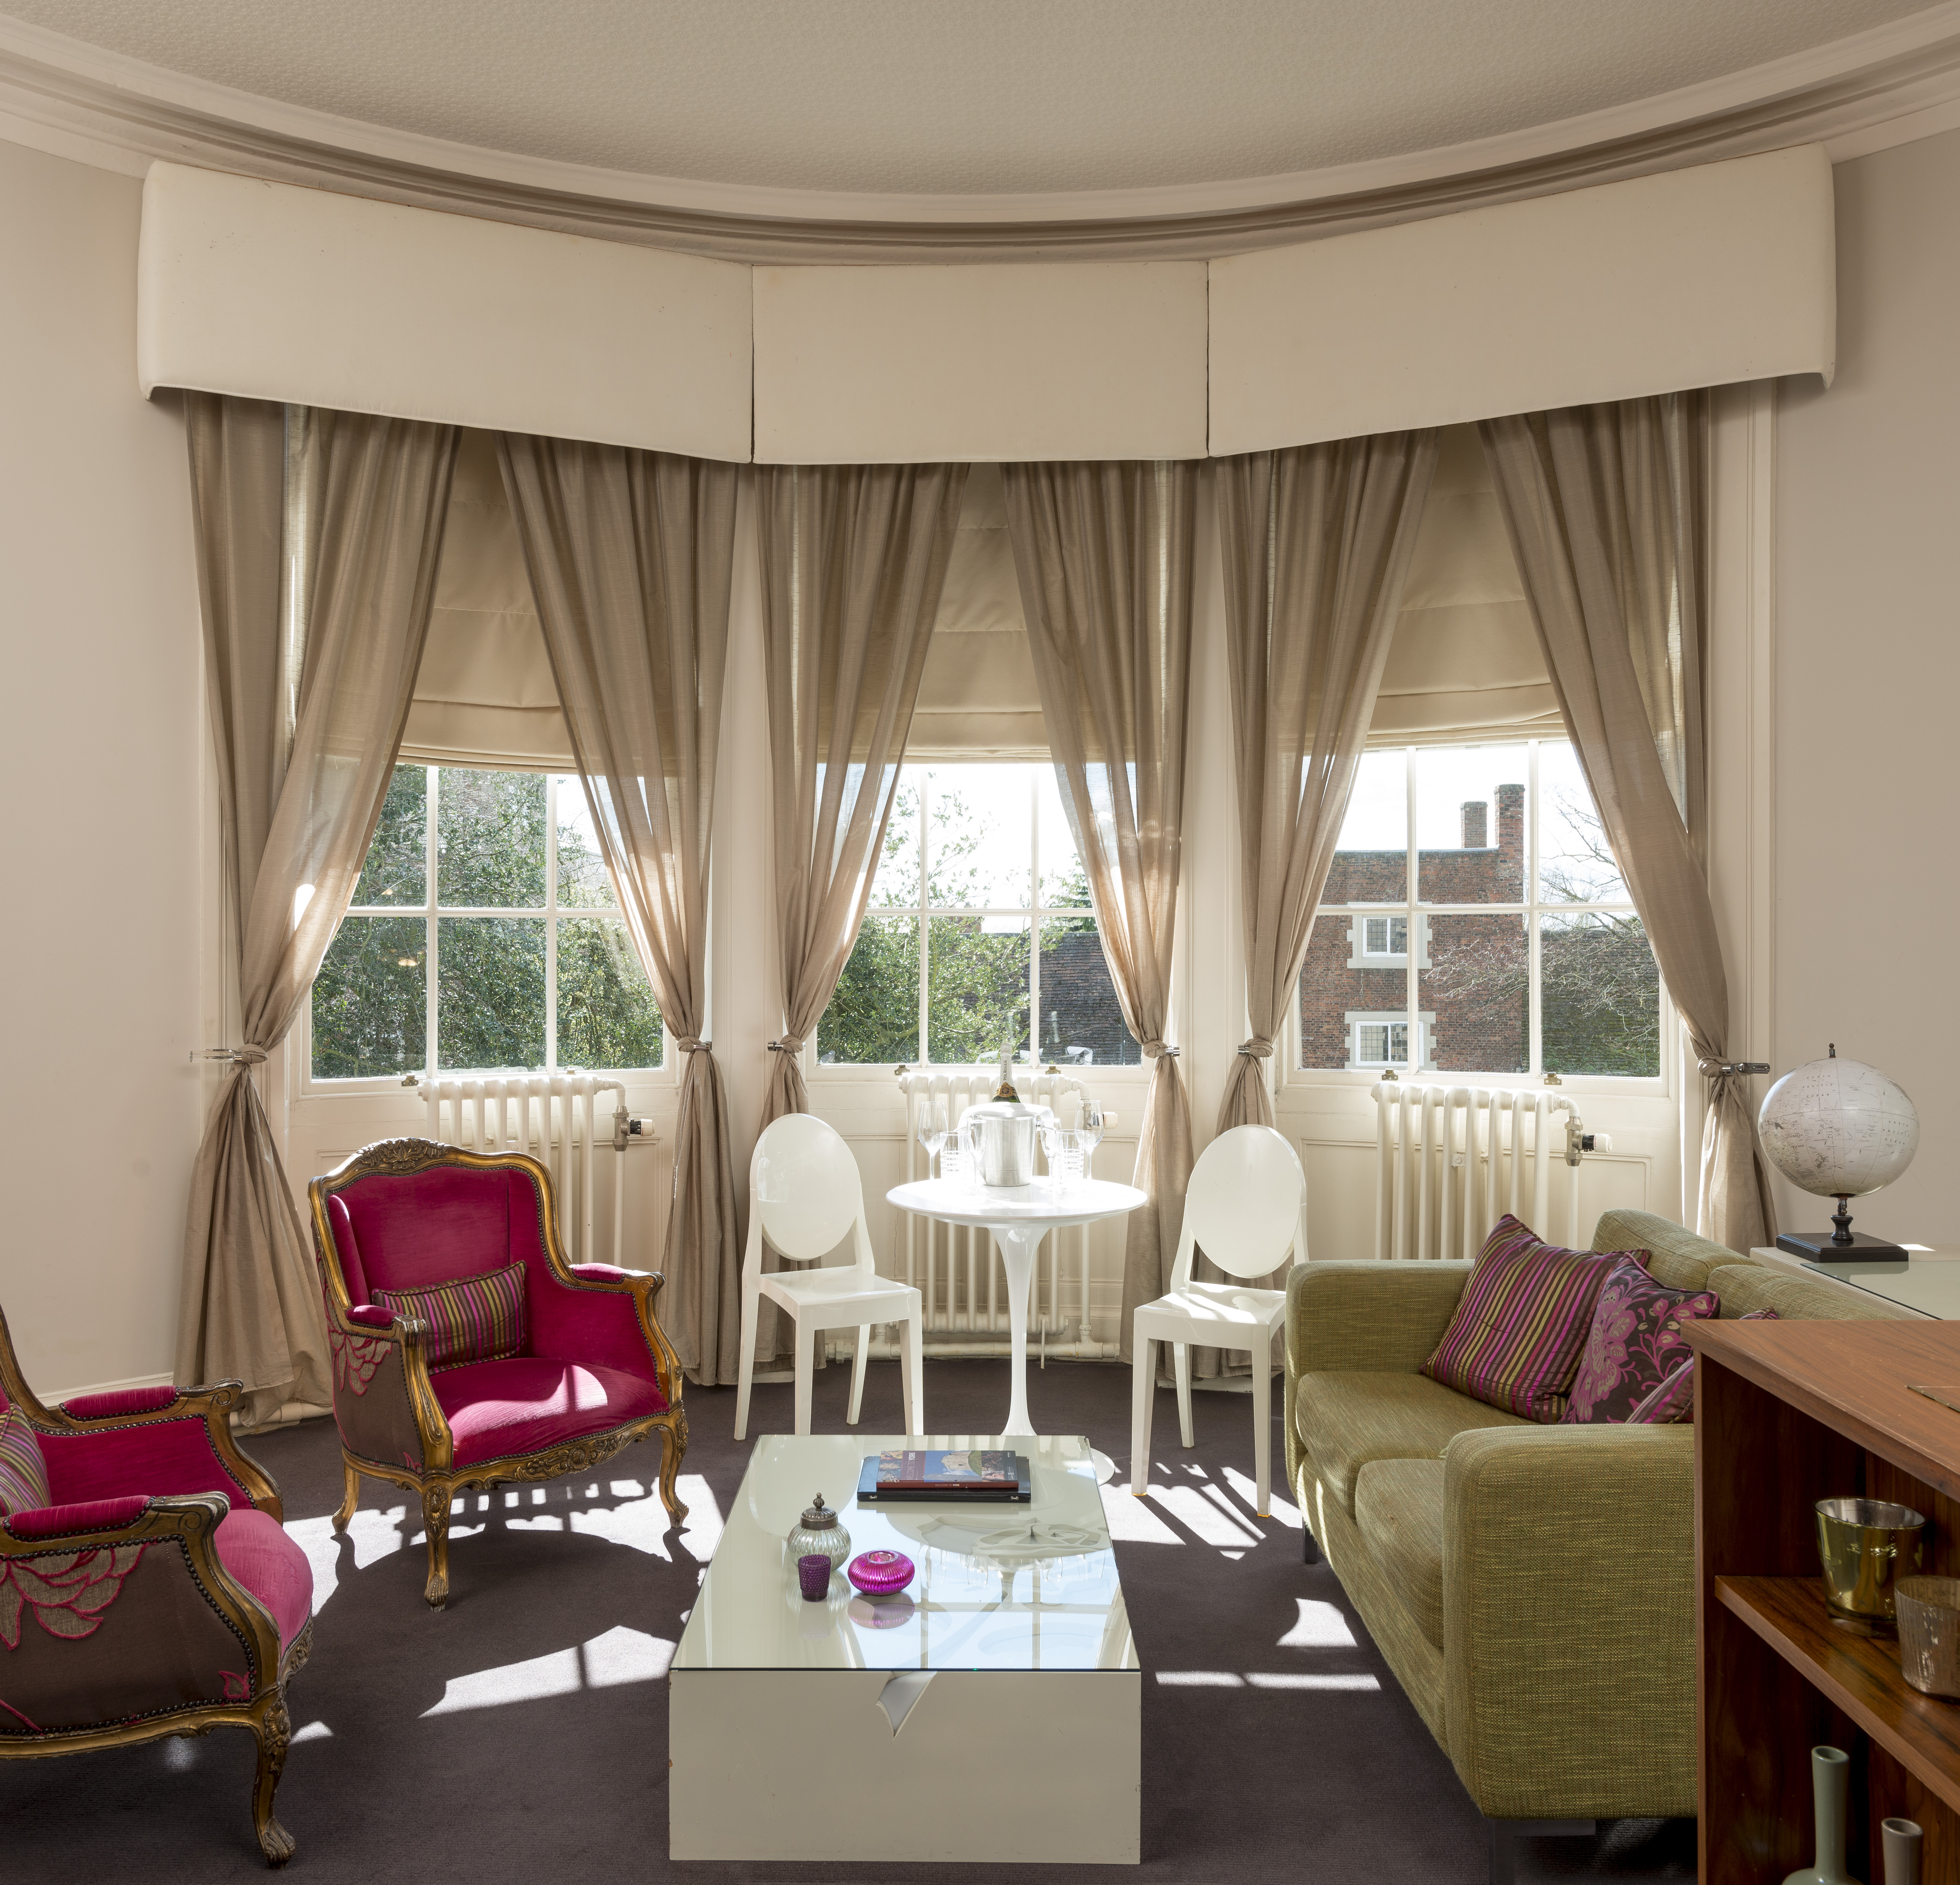 The Prince of Wales Suite